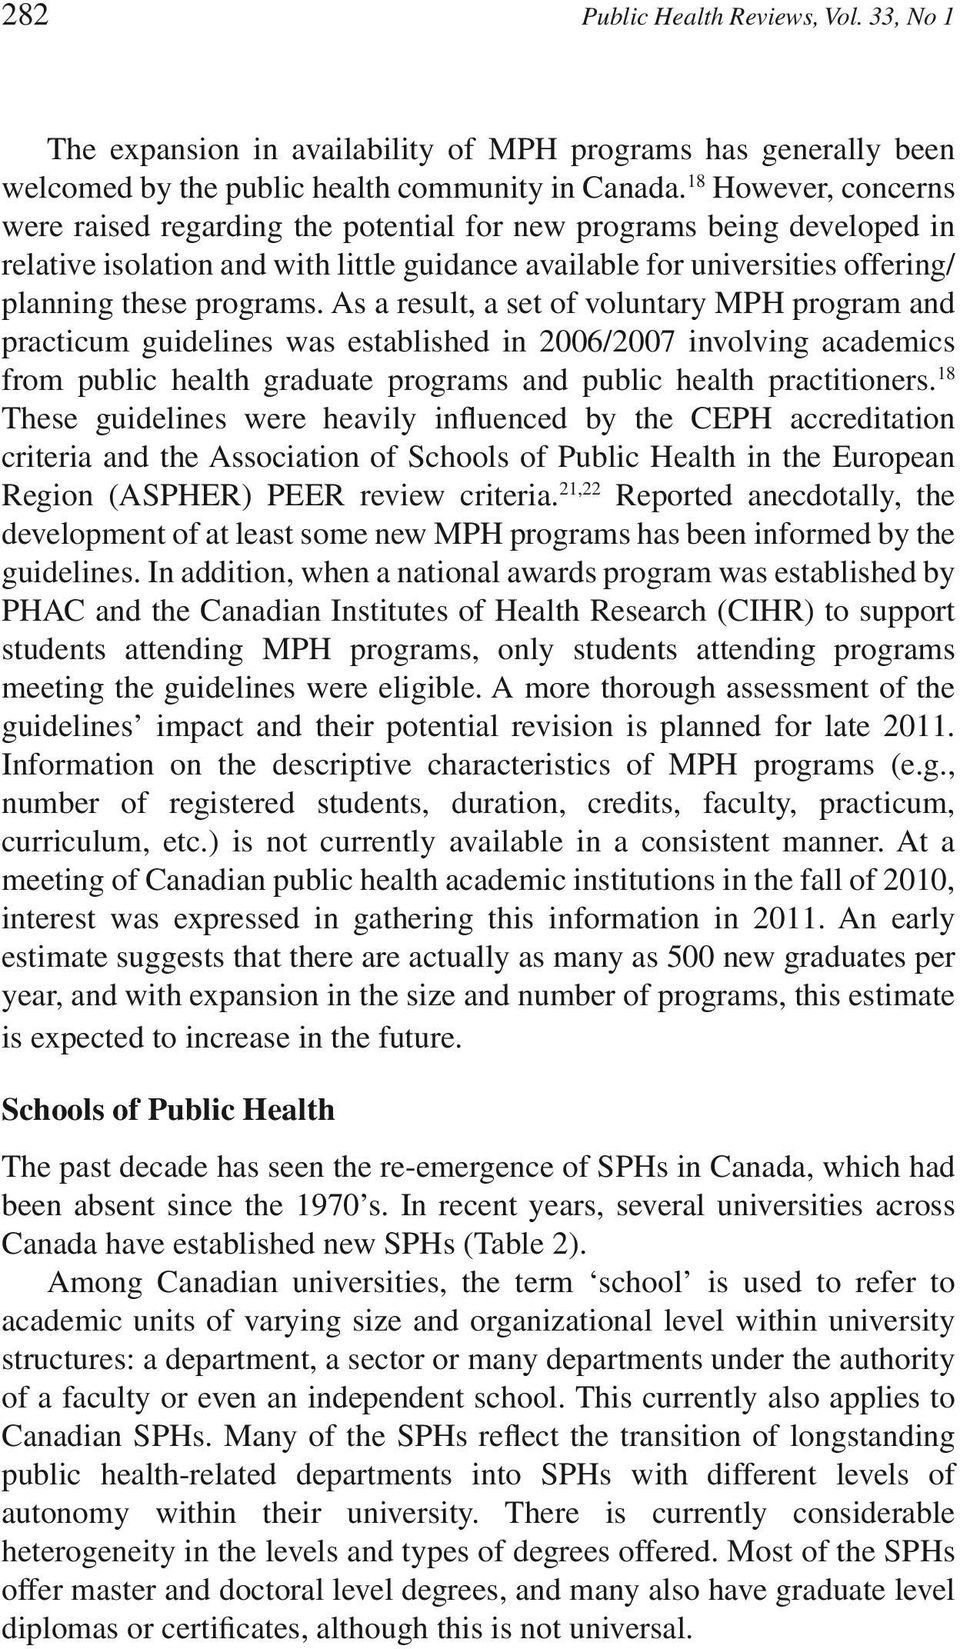 As a result, a set of voluntary MPH program and practicum guidelines was established in 2006/2007 involving academics from public health graduate programs and public health practitioners.